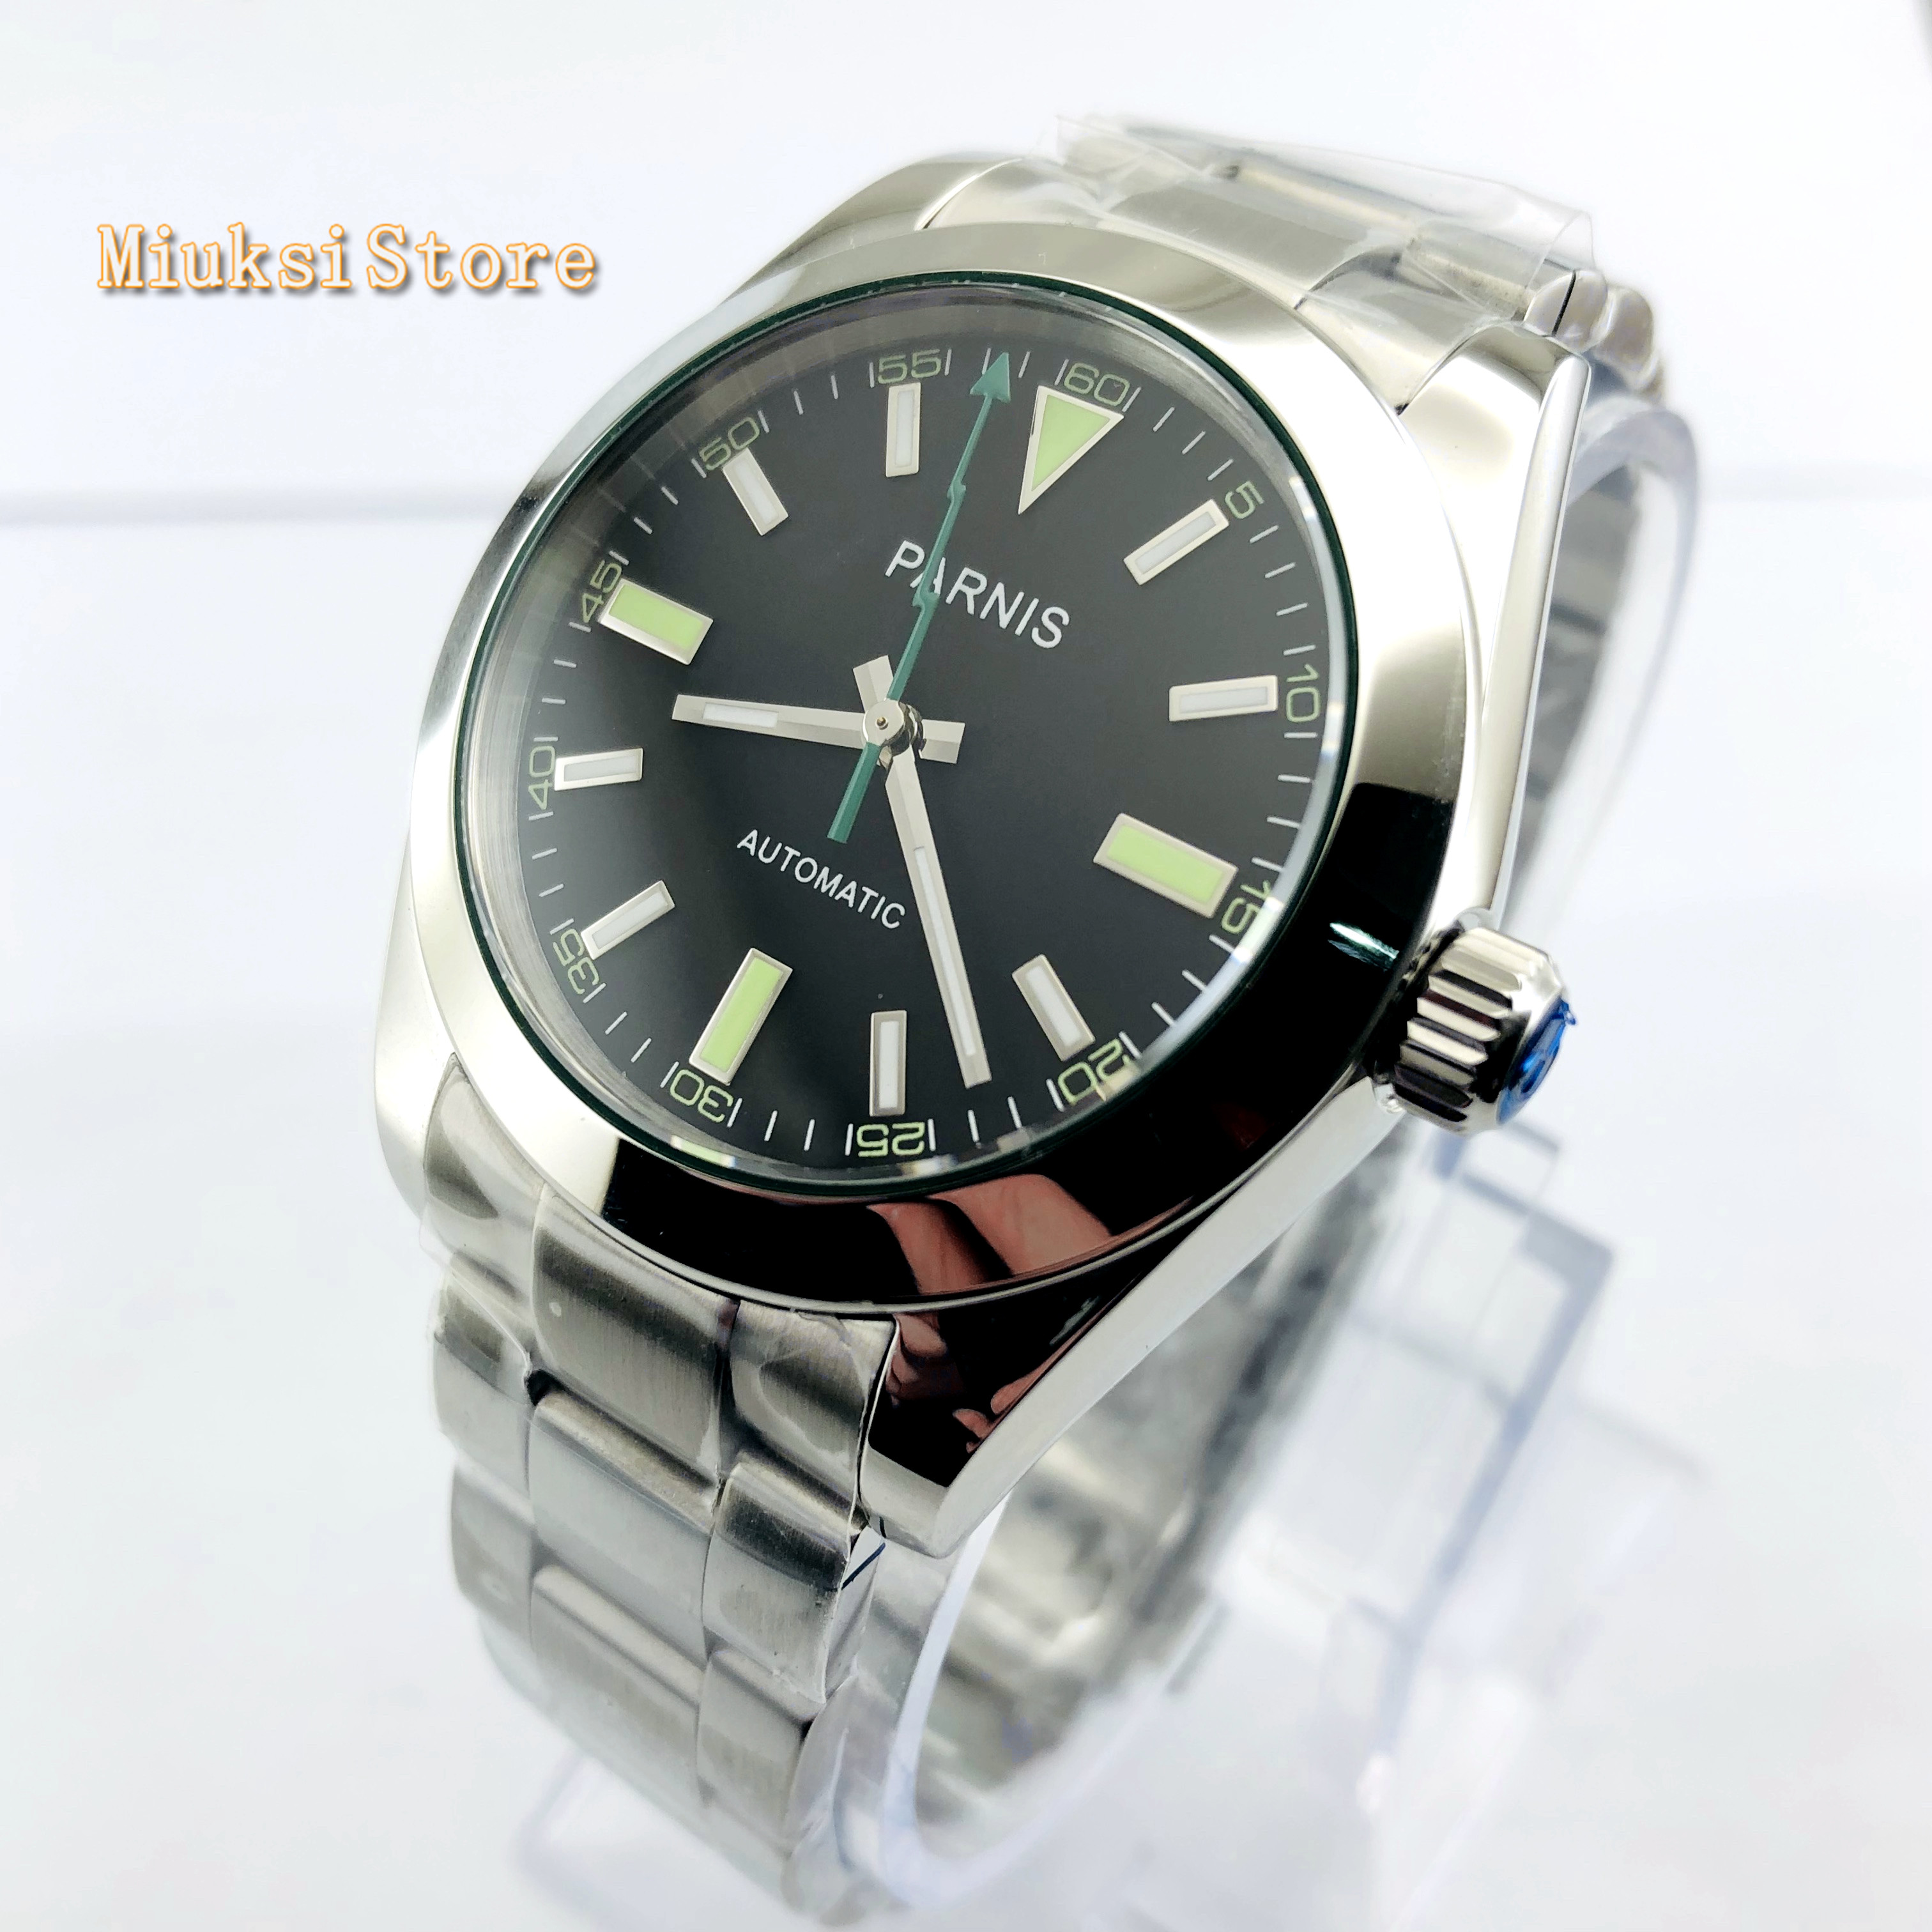 parnis 40mm men's top luxury watches black dial sapphire glass  luminous automatic mens stainless steel mechanical watch